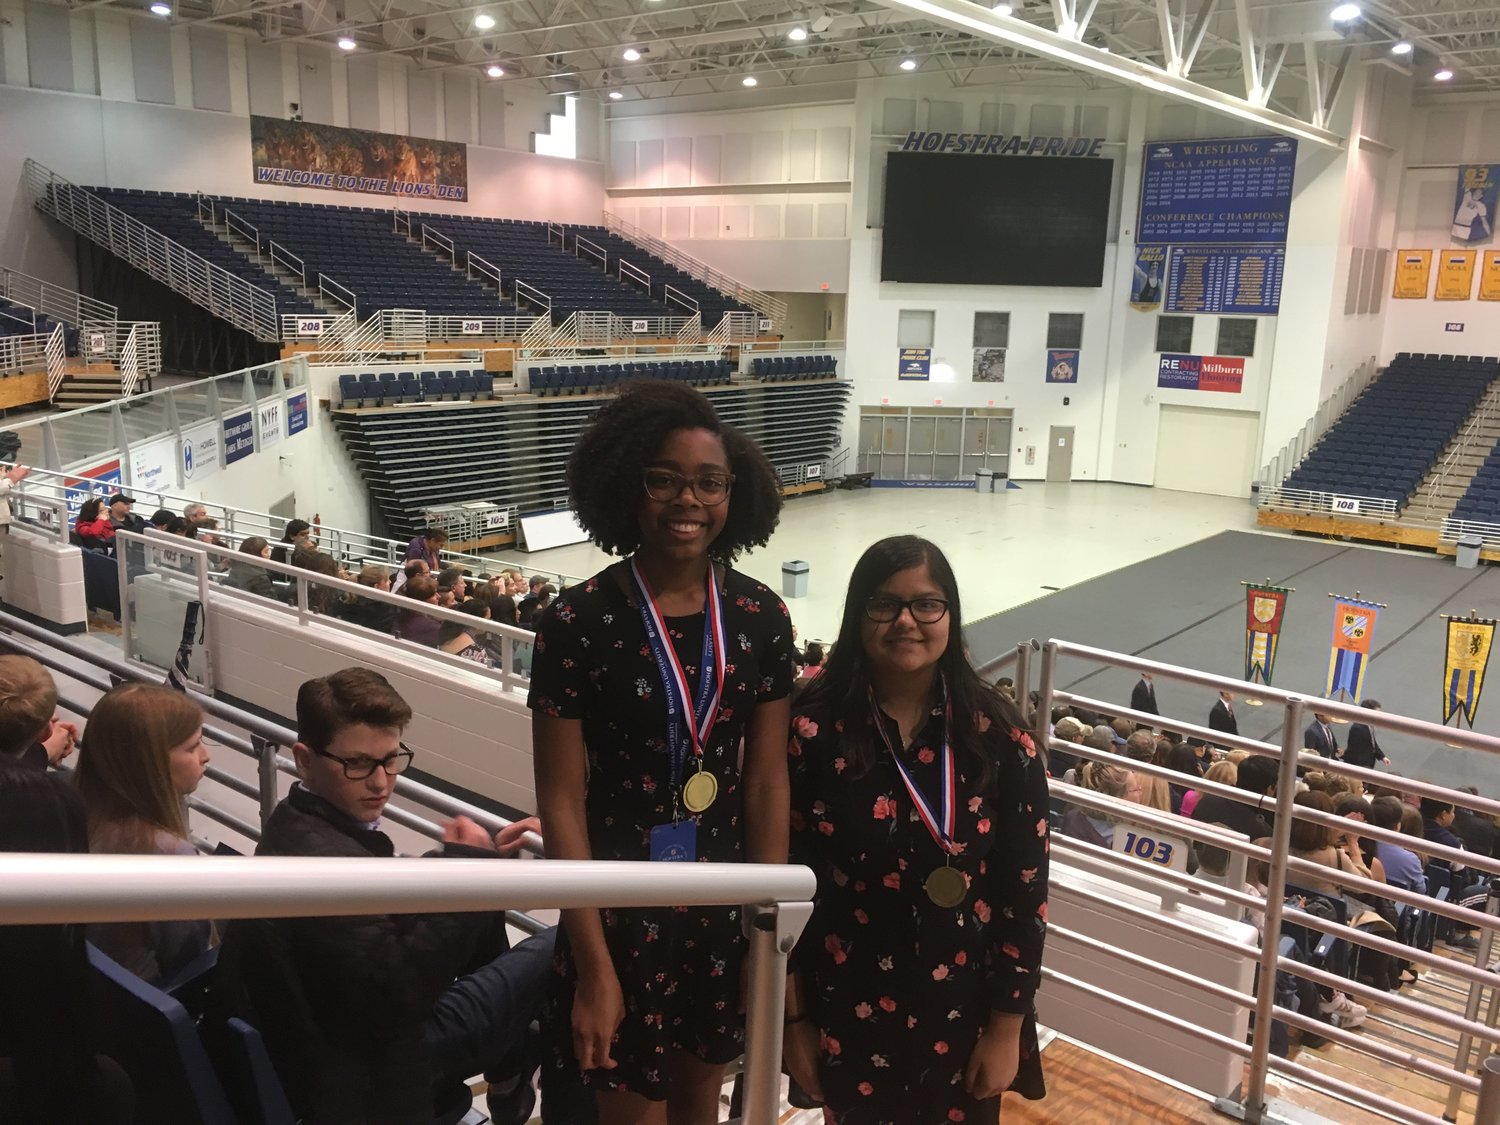 Faith Fuller, left, and Shreejita Satpathy, right, of W.T. Clarke Middle School garnered fourth place in the Junior Group Documentary category at the Long Island History Day regional competition on March 31 at Hofstra University.